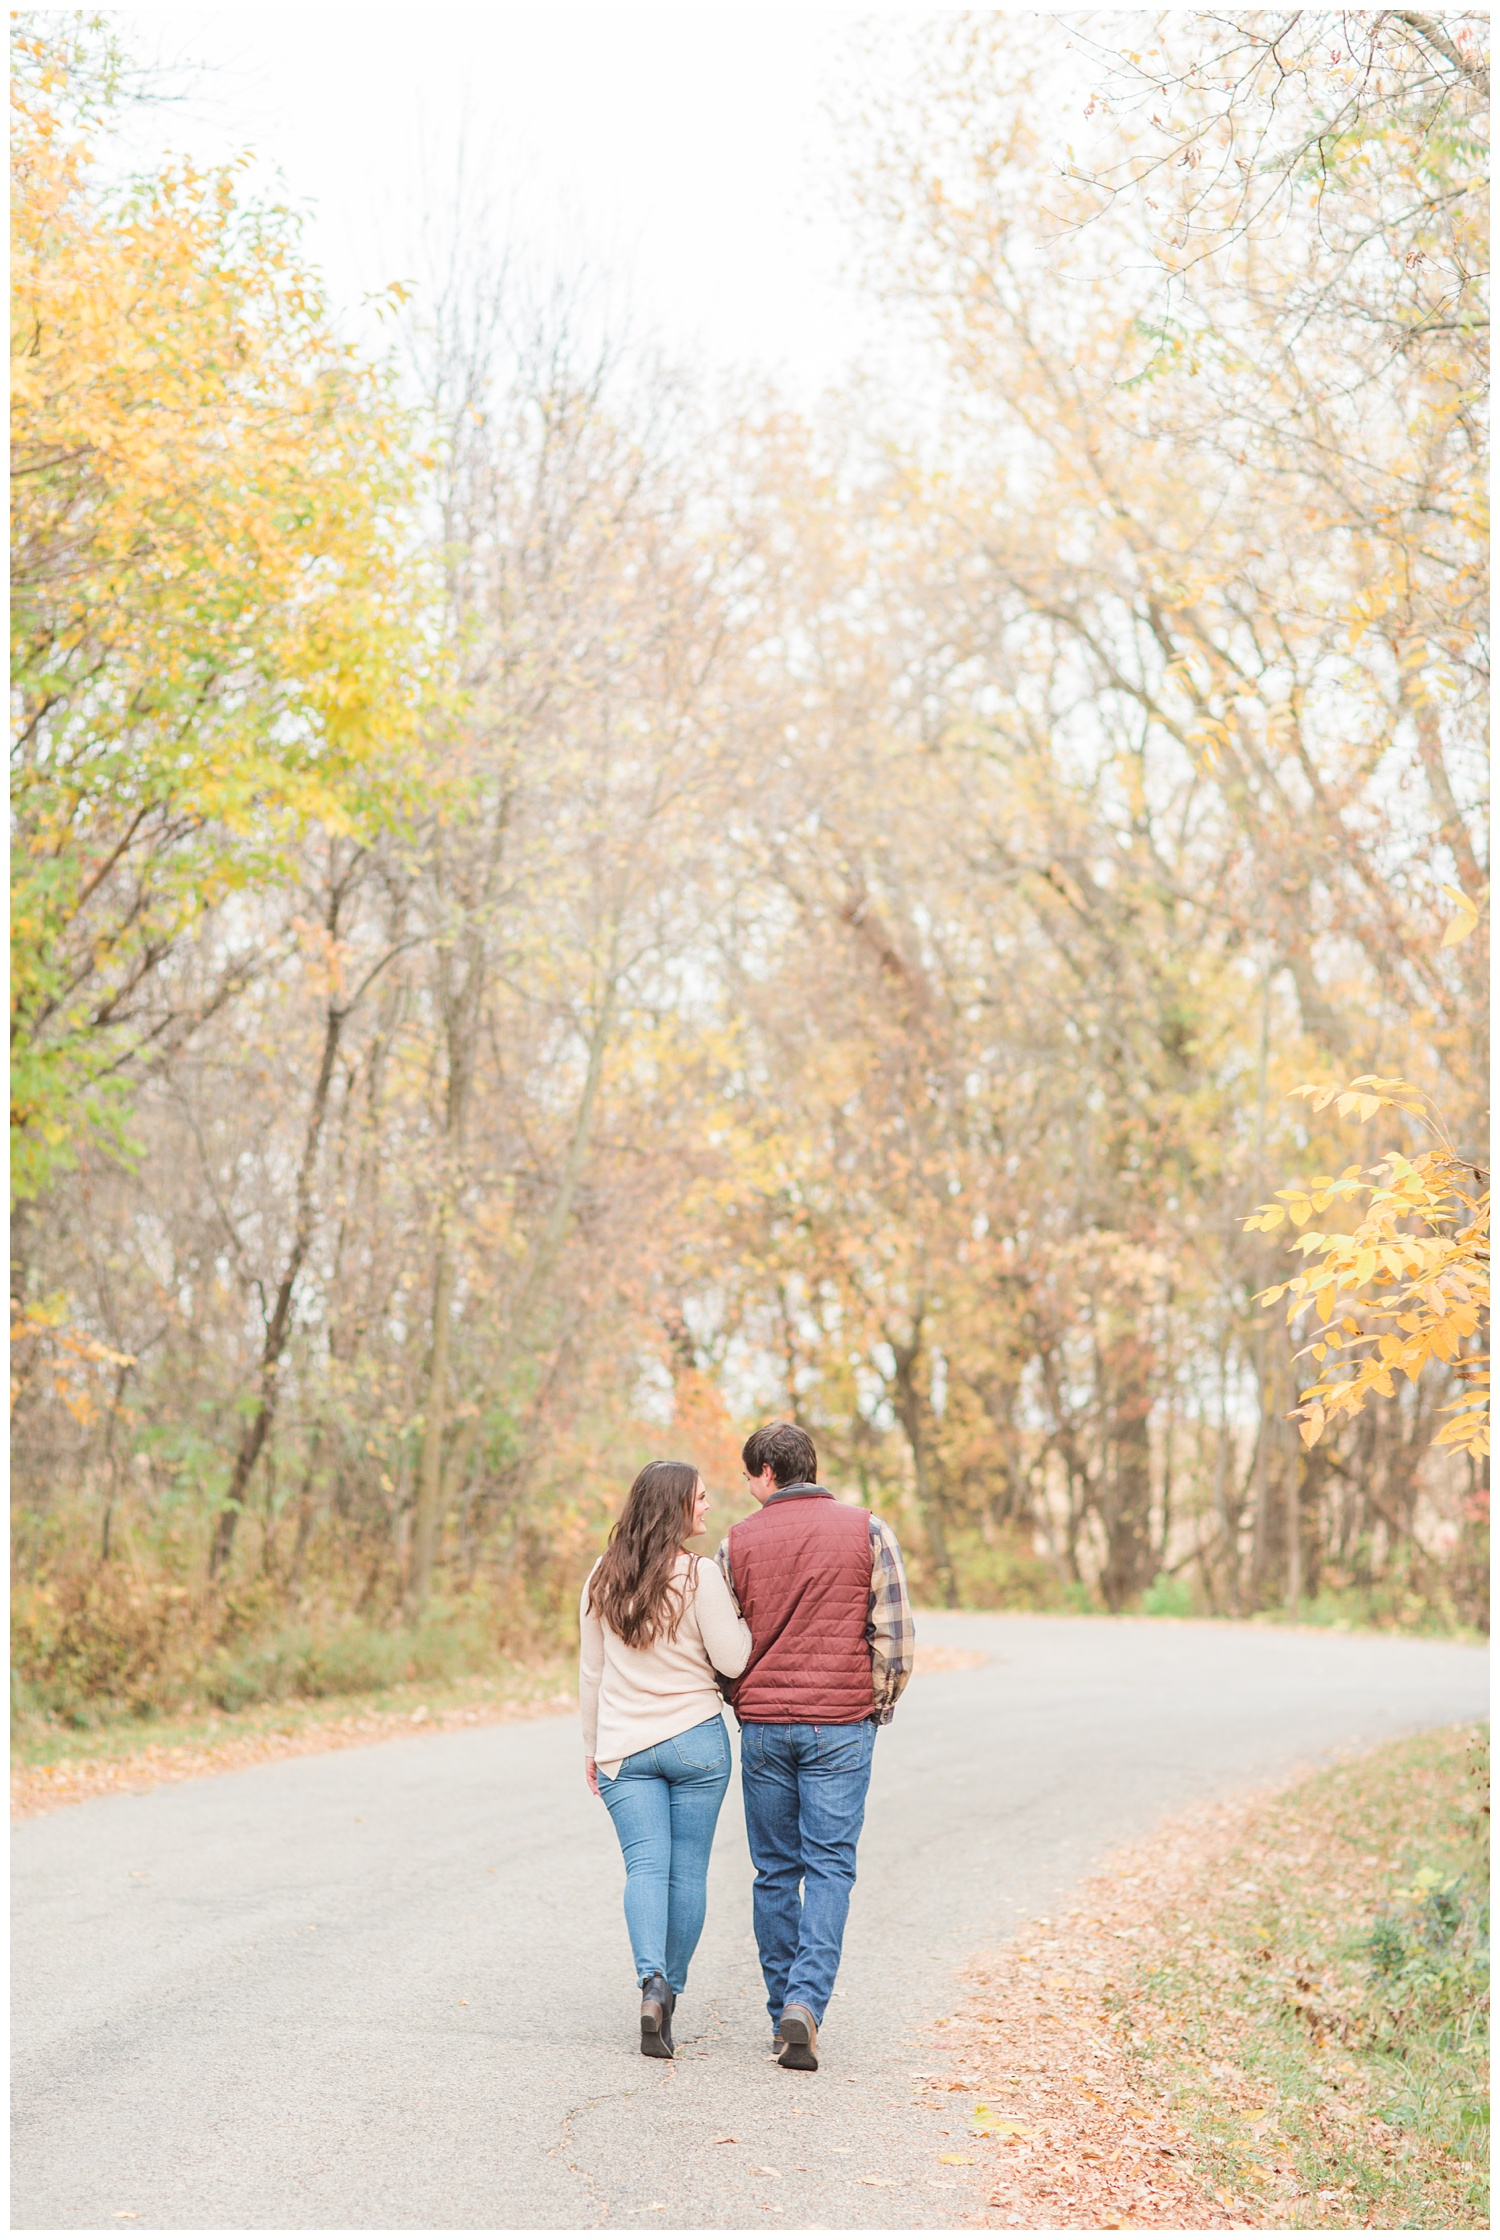 Fall in Iowa, Jenna and Brady link arms as they walk along an autumn path at Lost Island Nature Center   CB Studio